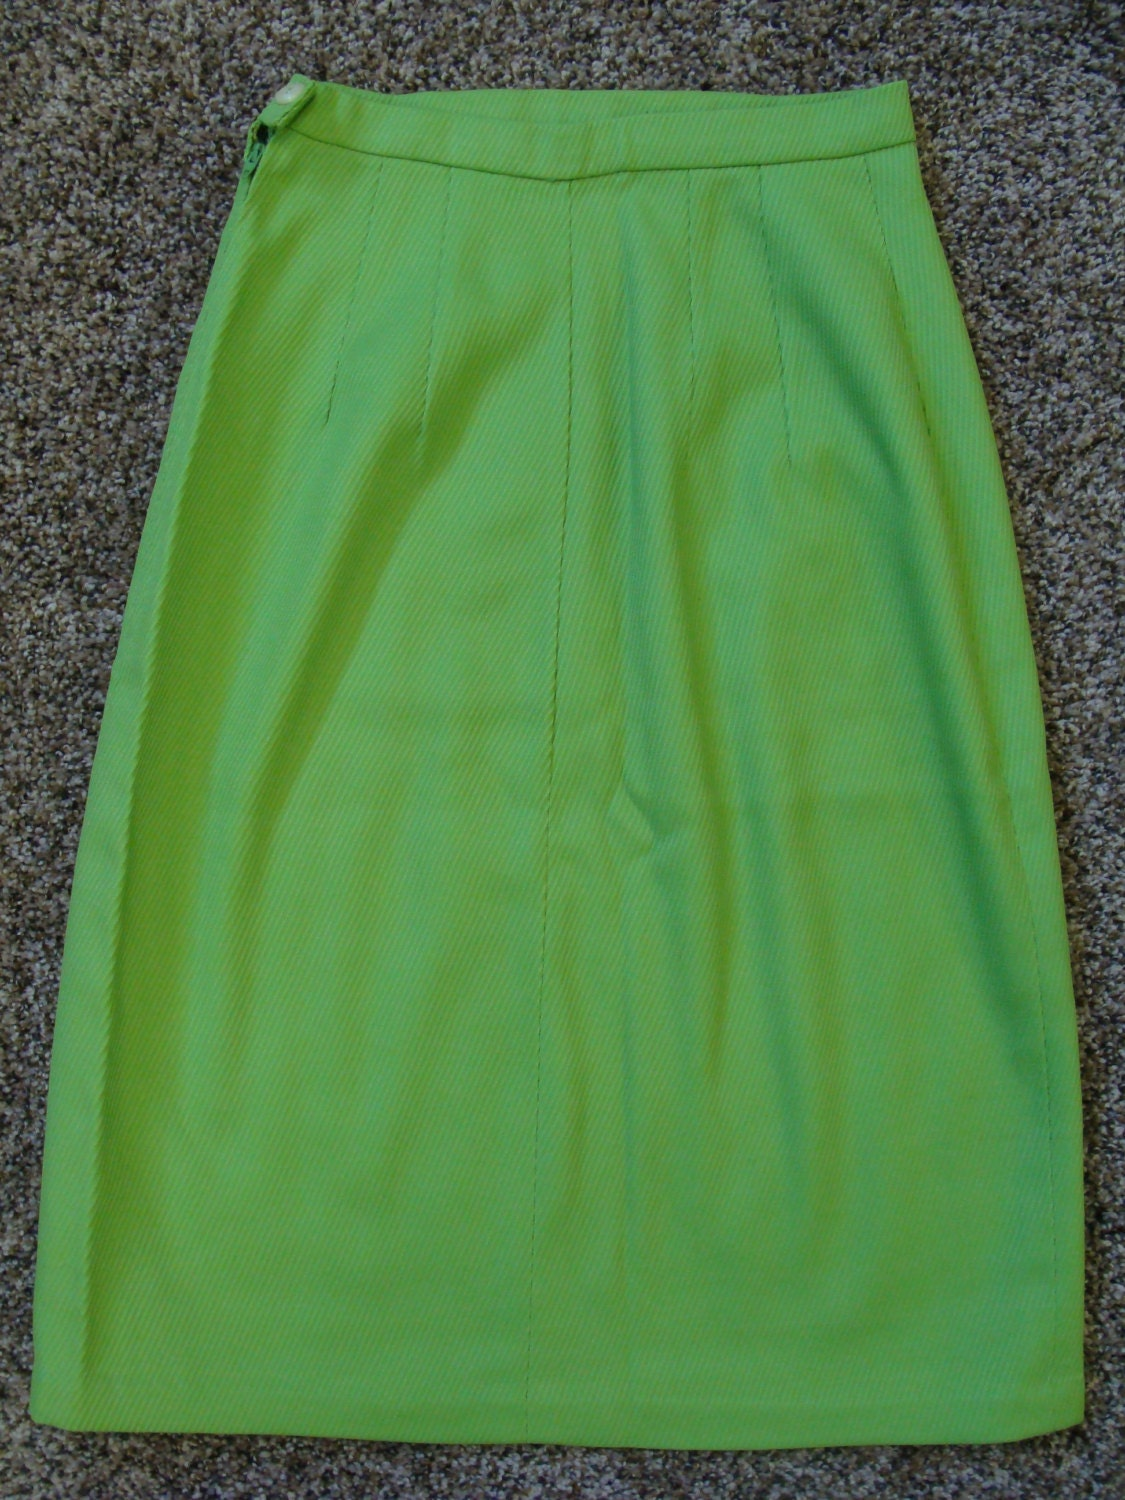 high waisted lime green pencil skirt 1960 s xs